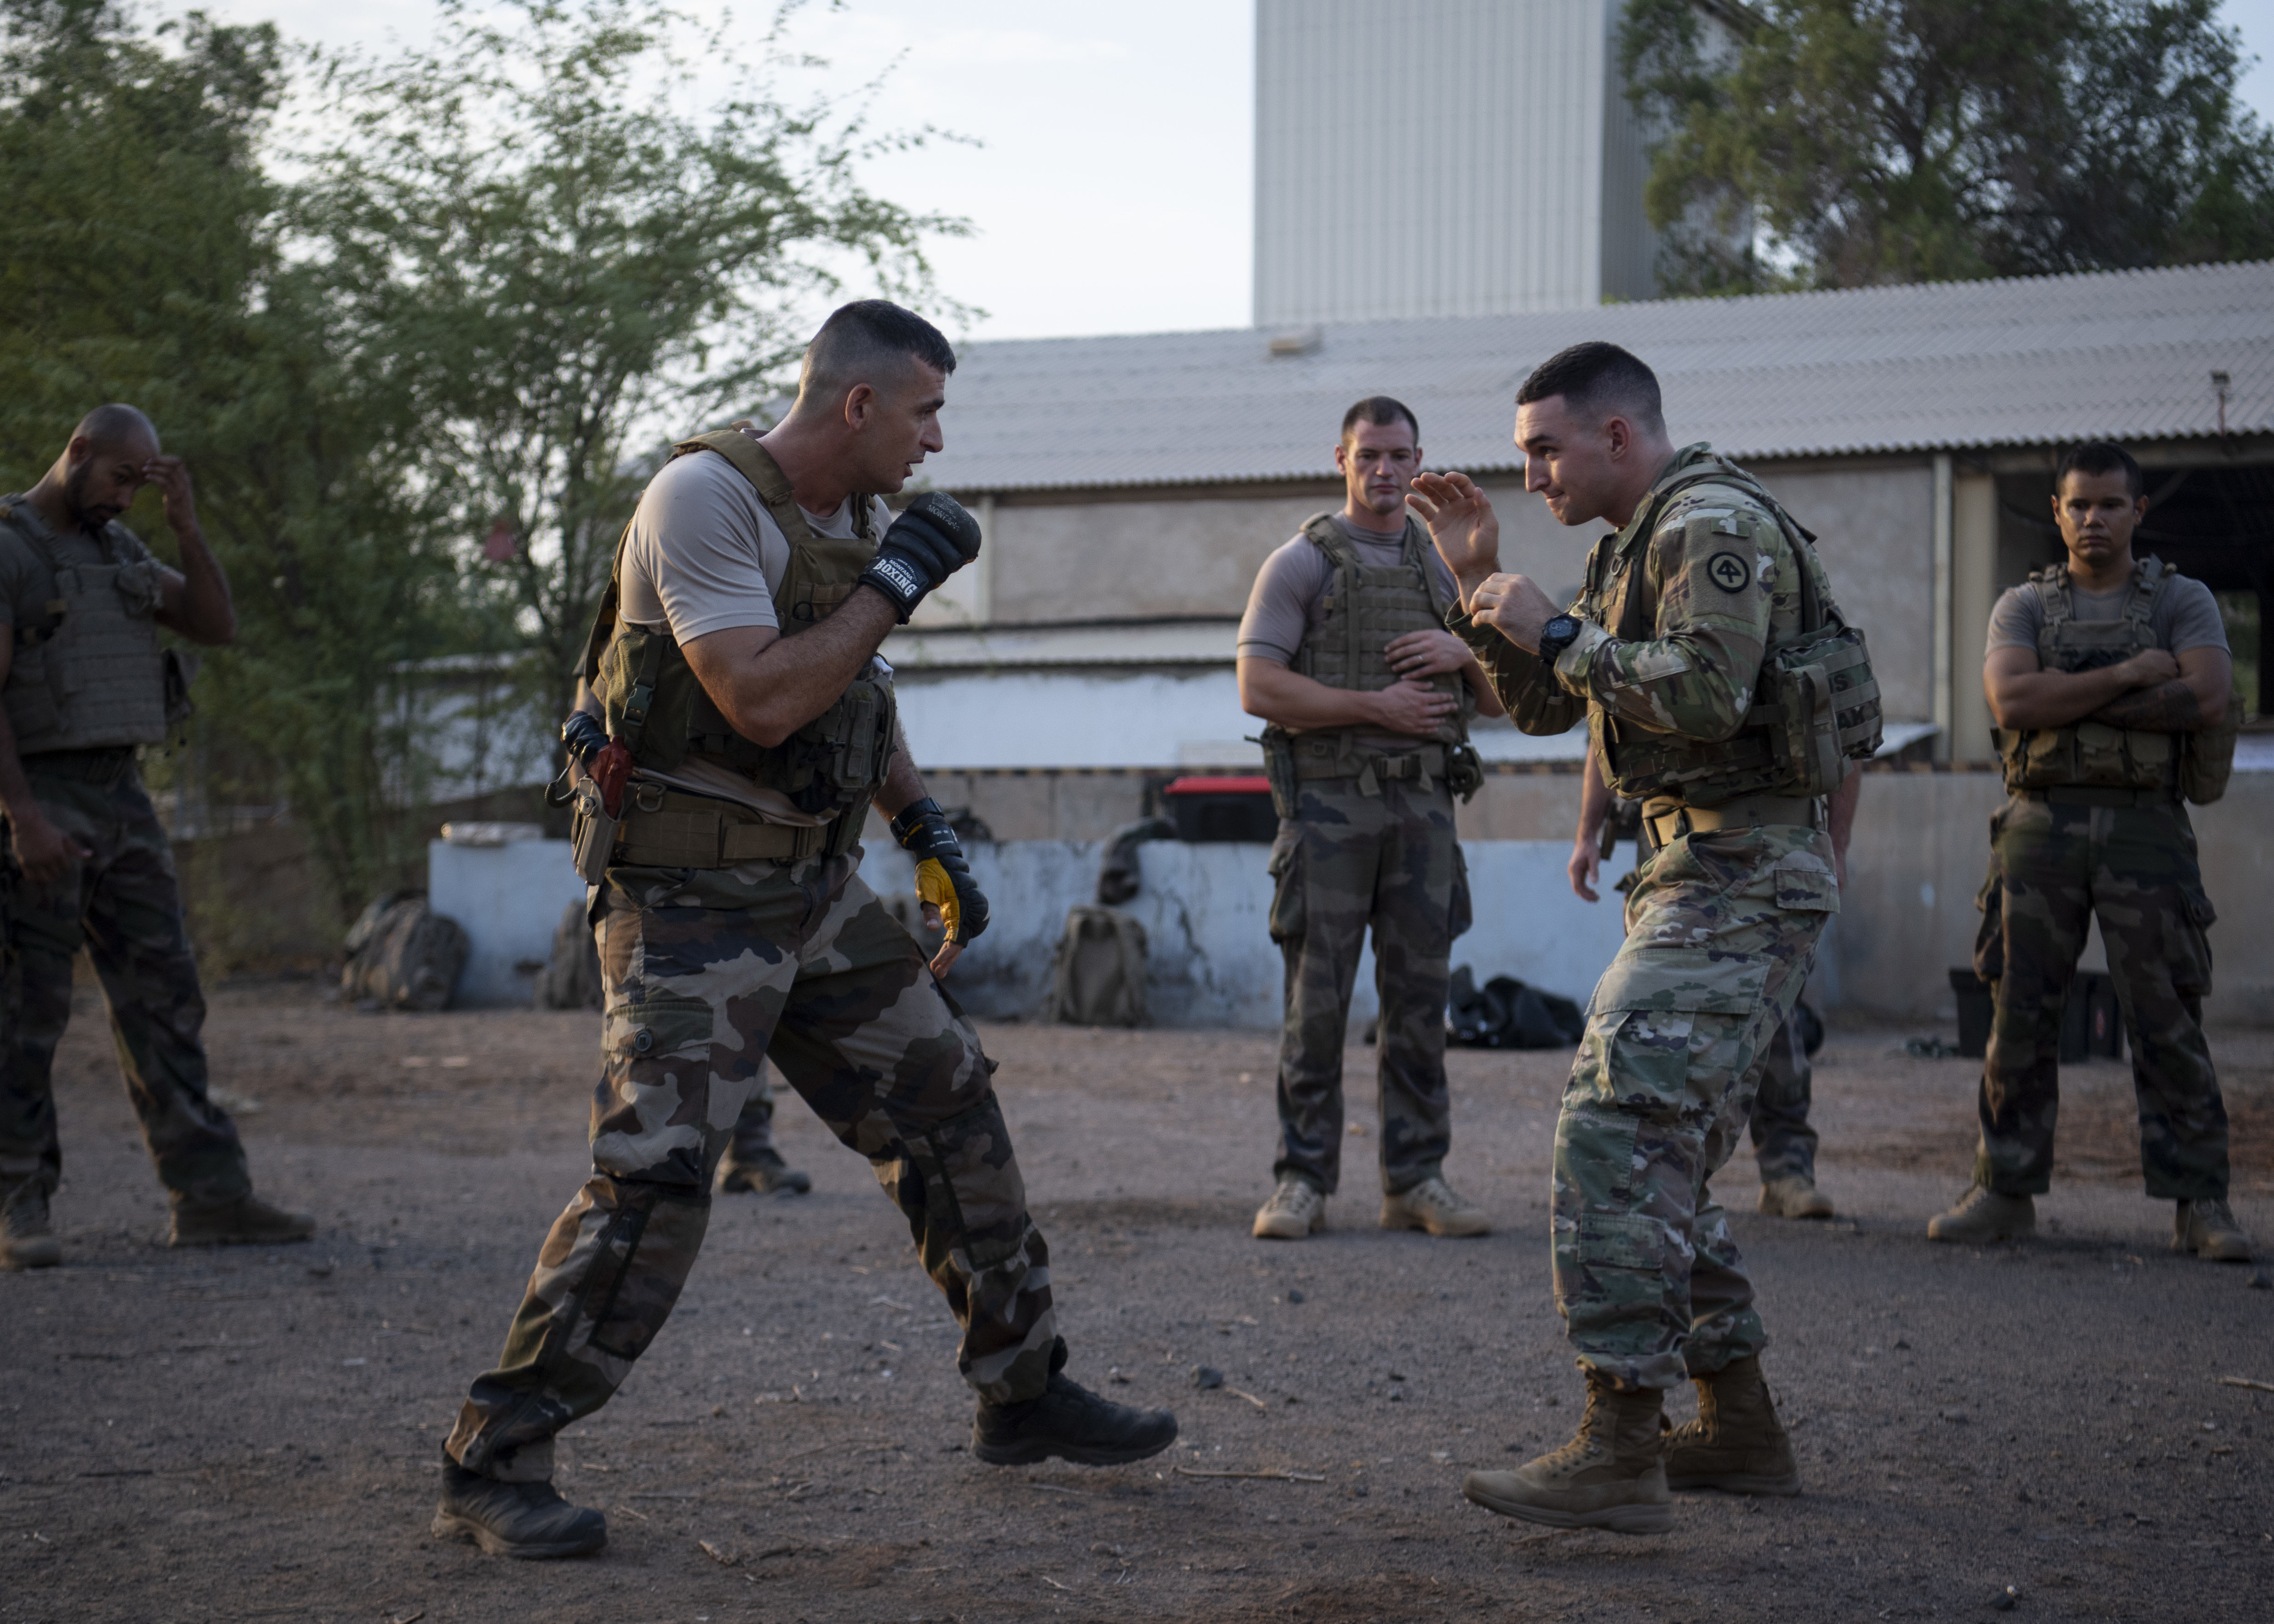 U.S. Army 1st Lt. Brian Caulfield security forces liason officer assigned to Combined Joint Task Force-Horn of Africa (CJTF-HOA) and SCH Ferrer Dimitri combatives instructor assigned to the 5th Overseas Intermarines Regiment spar during a combatives exchange at Djibouti Air Base, Djibouti, Sept. 2, 2019. The purpose of the joint training was to share French Marine and U.S. Army combative techniques and further the relationship between the two forces. (U.S. Air Force photo by Staff Sgt. J.D. Strong II)